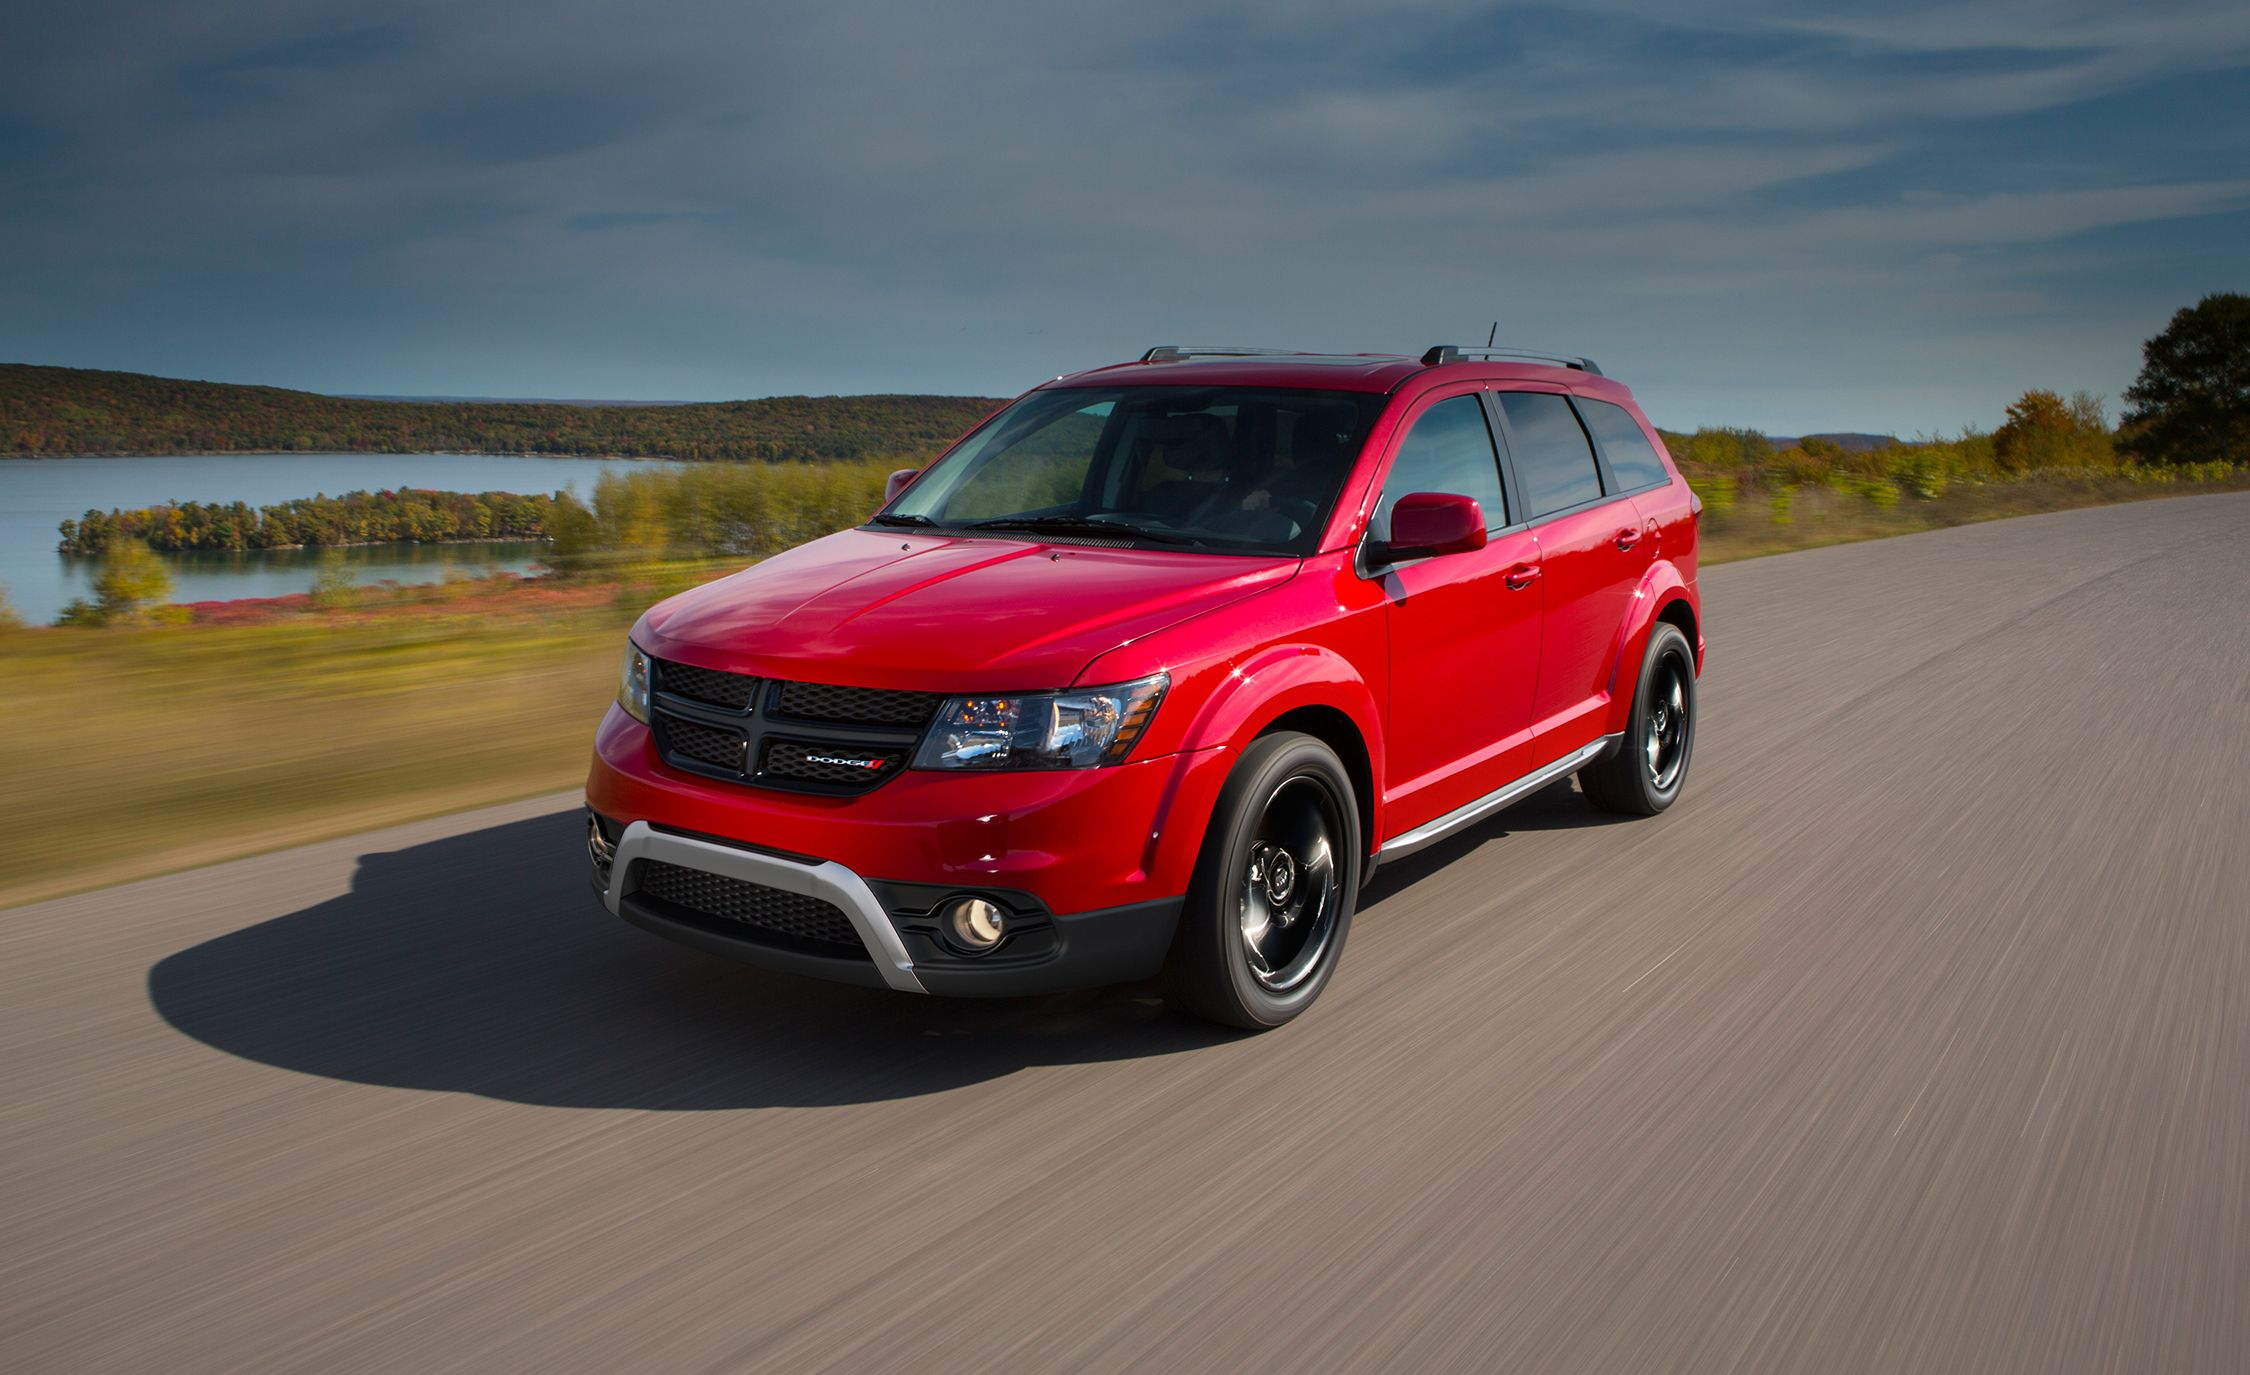 2019 Dodge Journey Reviews | Dodge Journey Price, Photos, and Specs | Car  and Driver